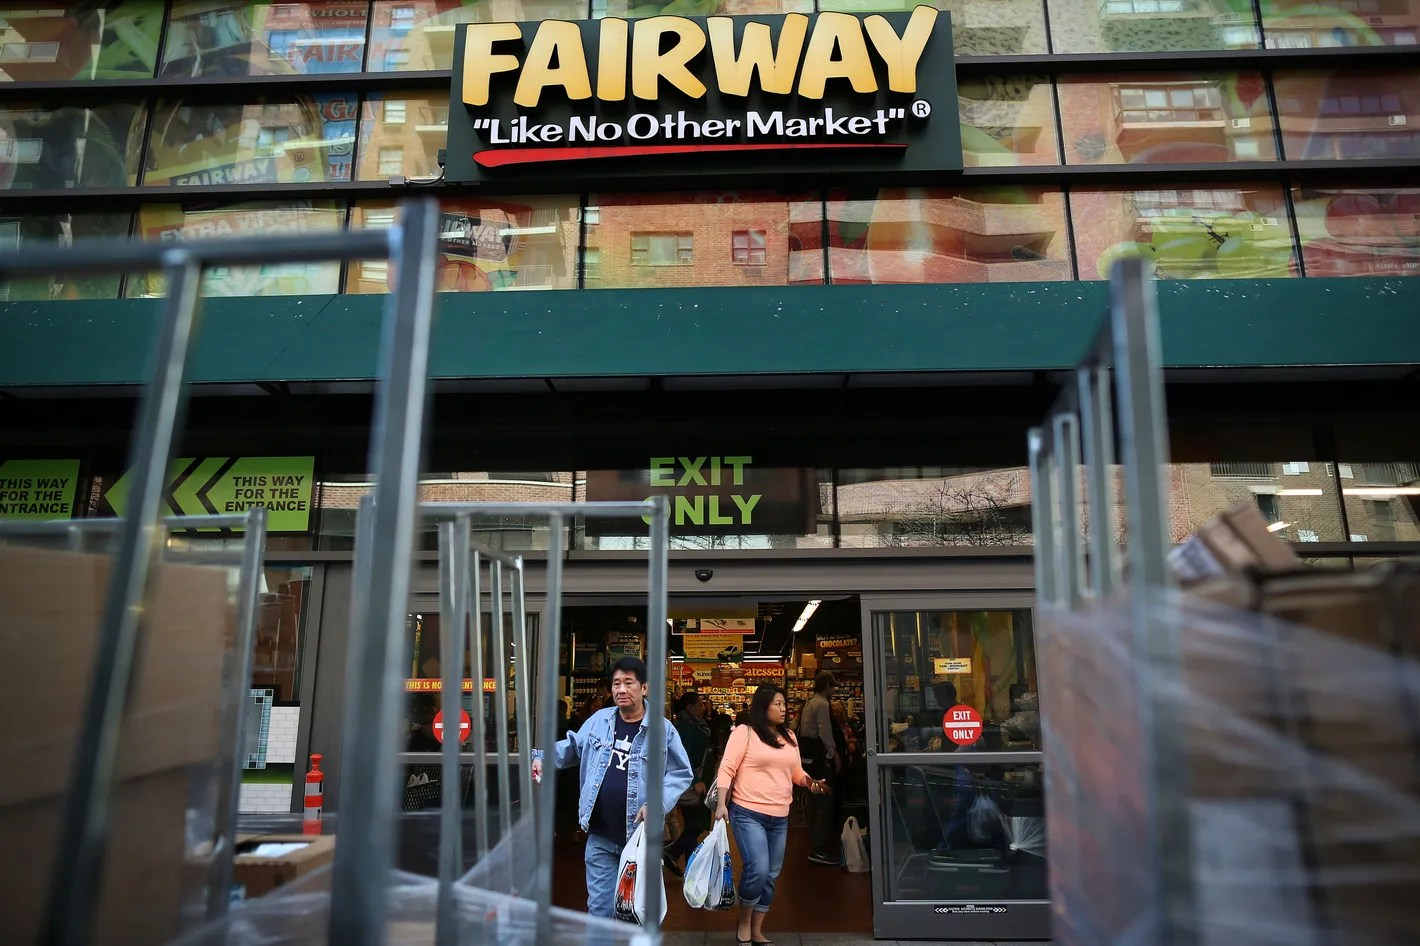 Fairway Shop Inside The Collapse Of Fairway New Yorks Favorite